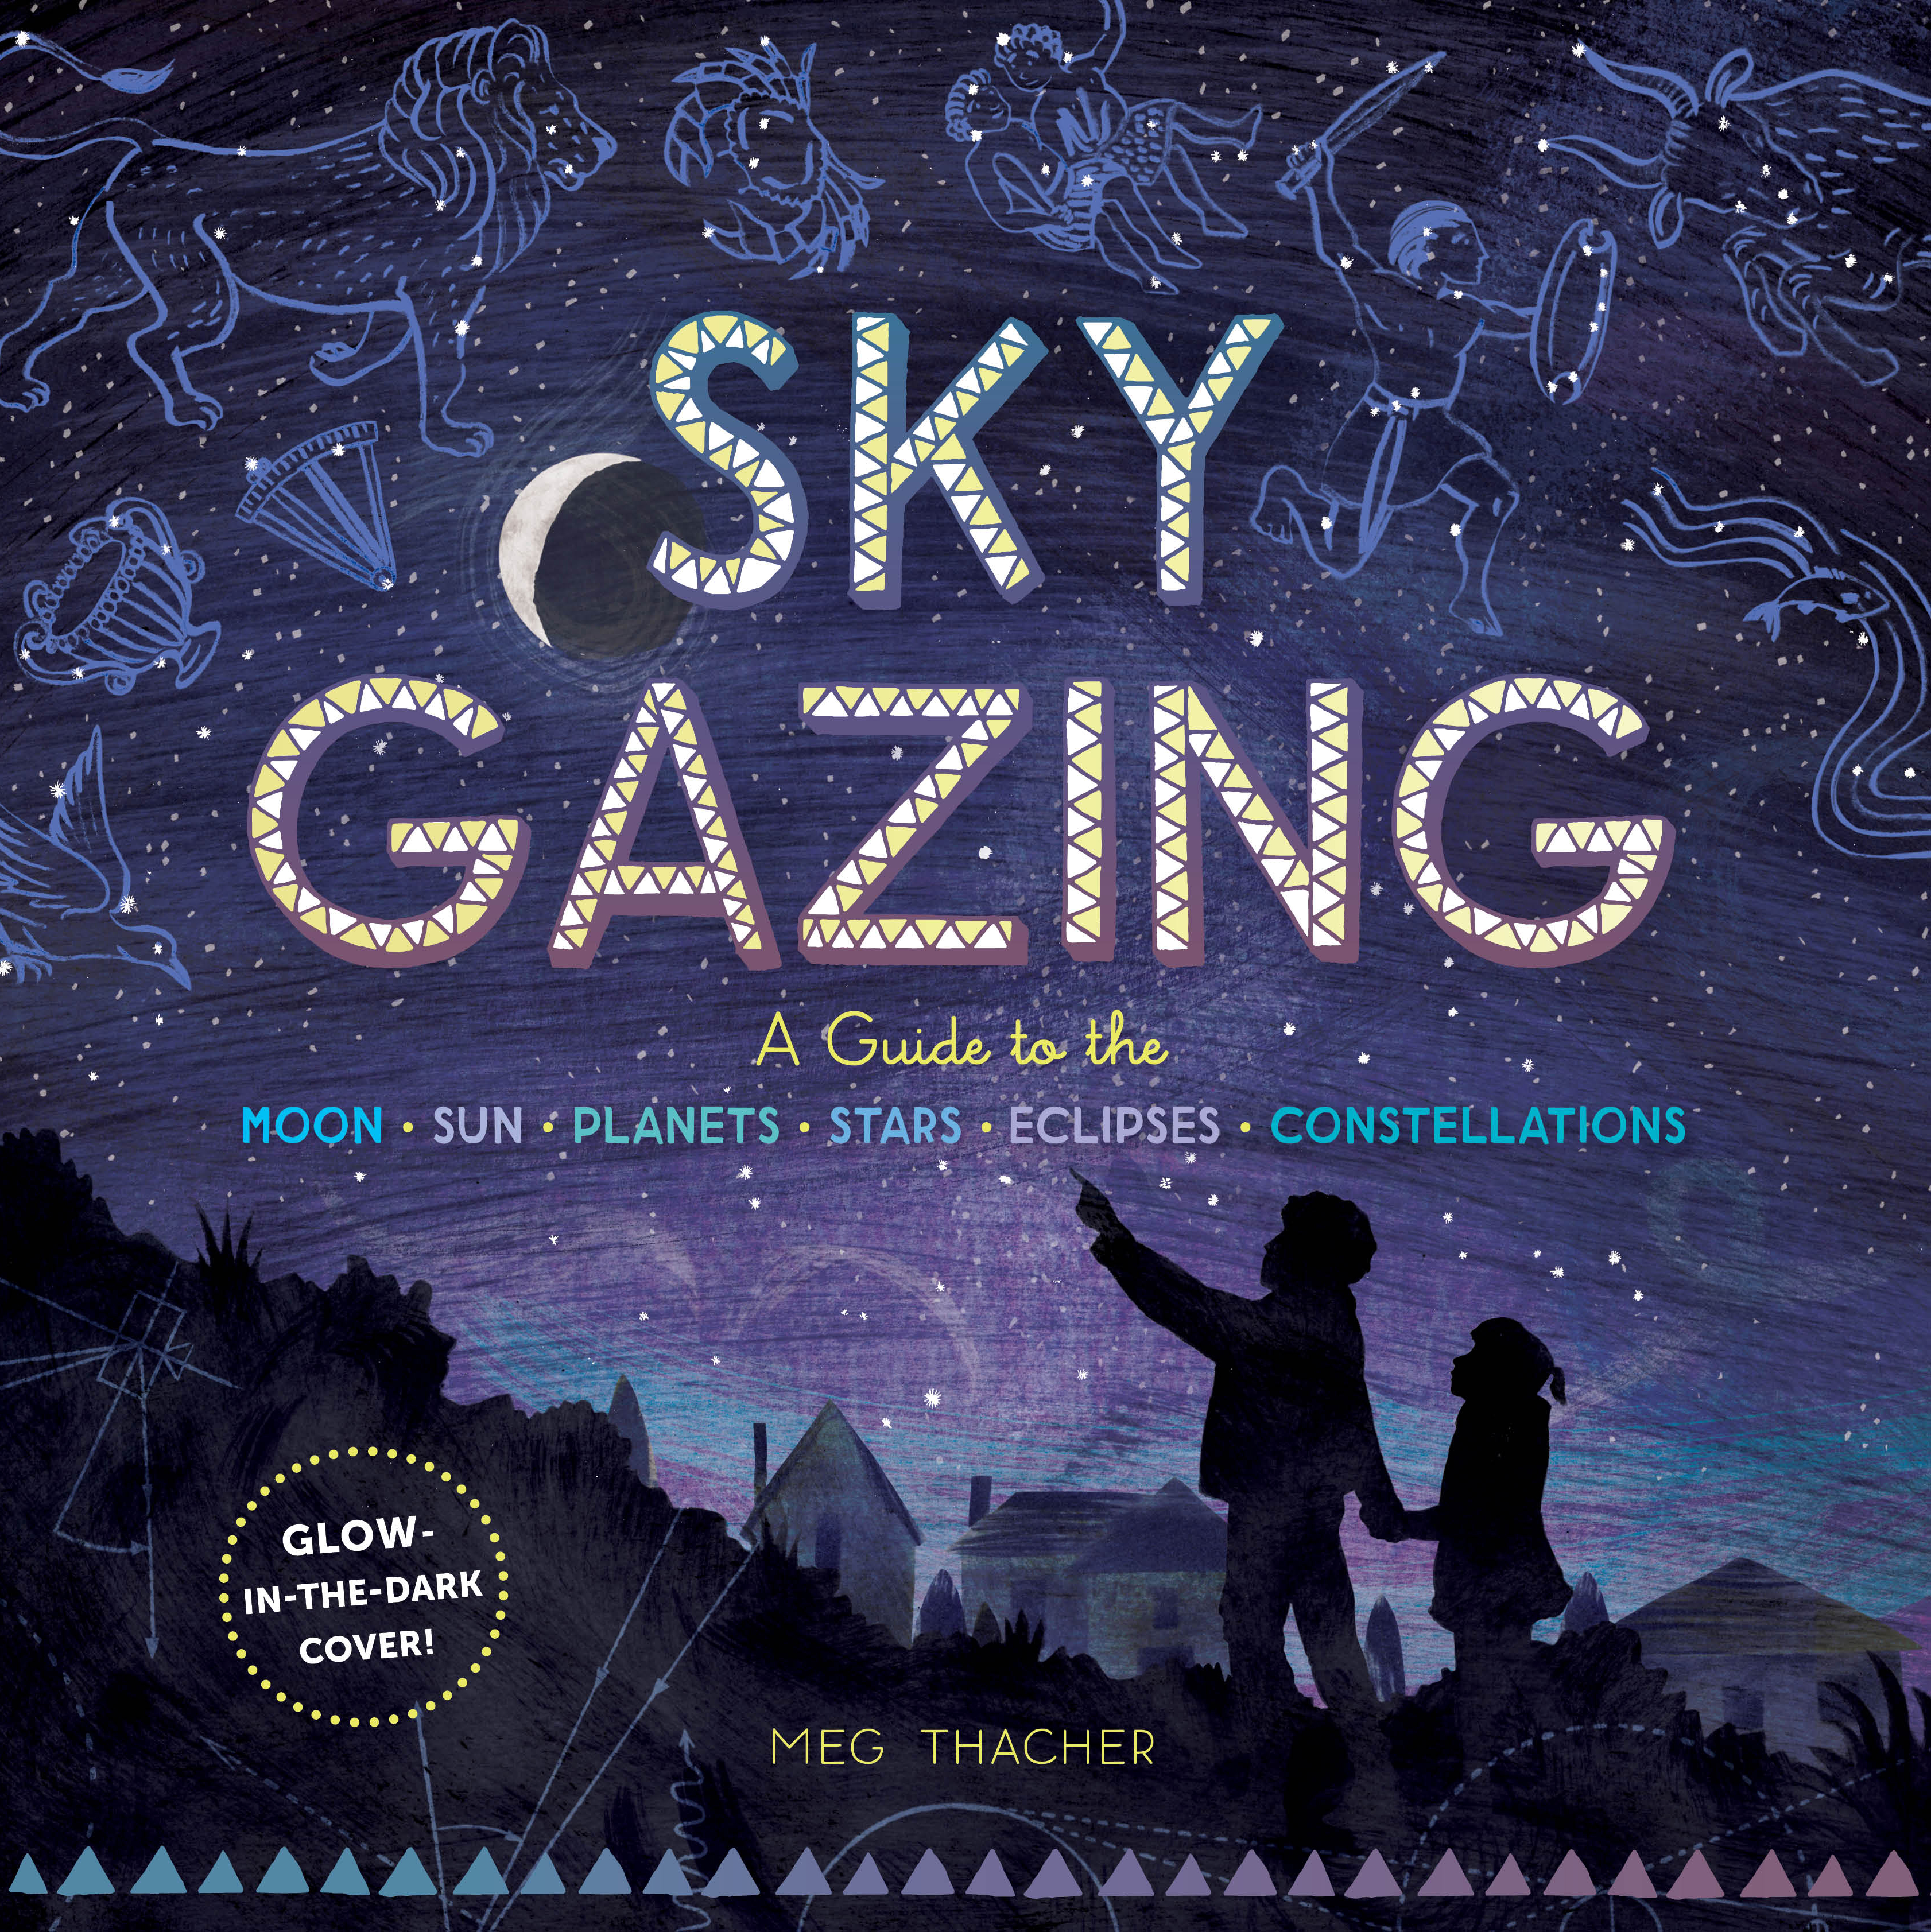 Sky Gazing A Kid's Guide to the Moon, Sun, Planets, Stars, Eclipses, and Constellations - Meg Thacher